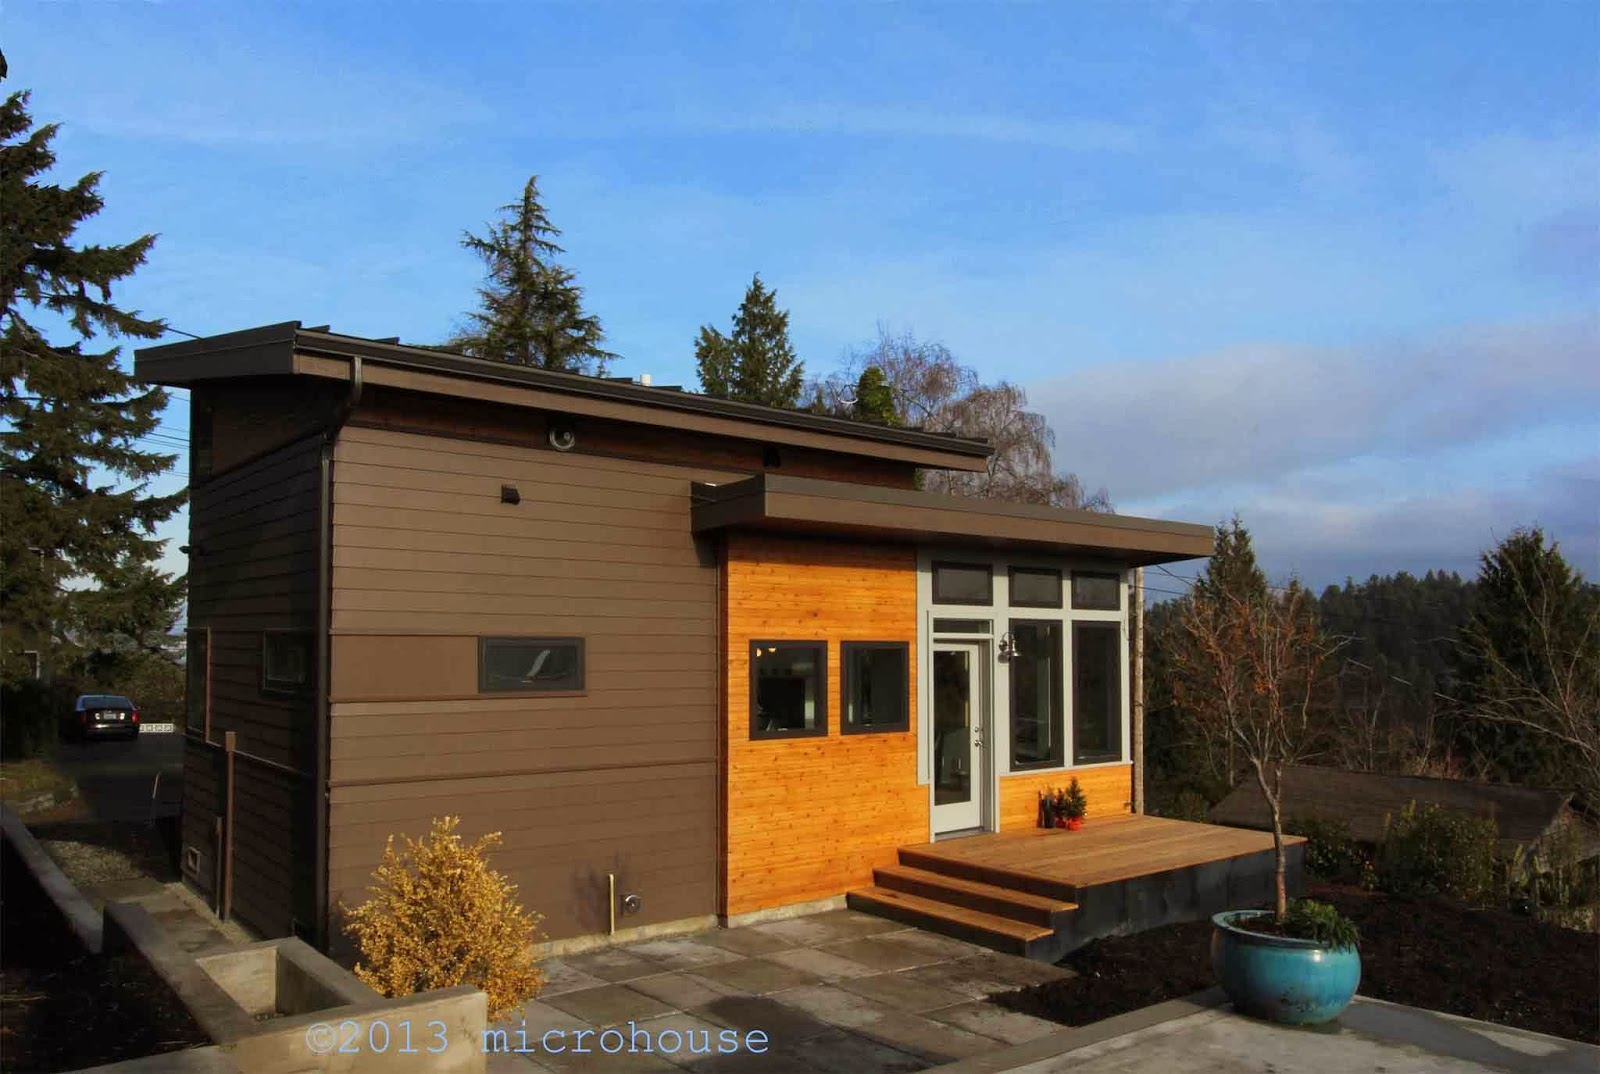 Seattle Backyard Cottage Rules : Que Signifie Follow des photoa, des photoa de fond, fond d?cran